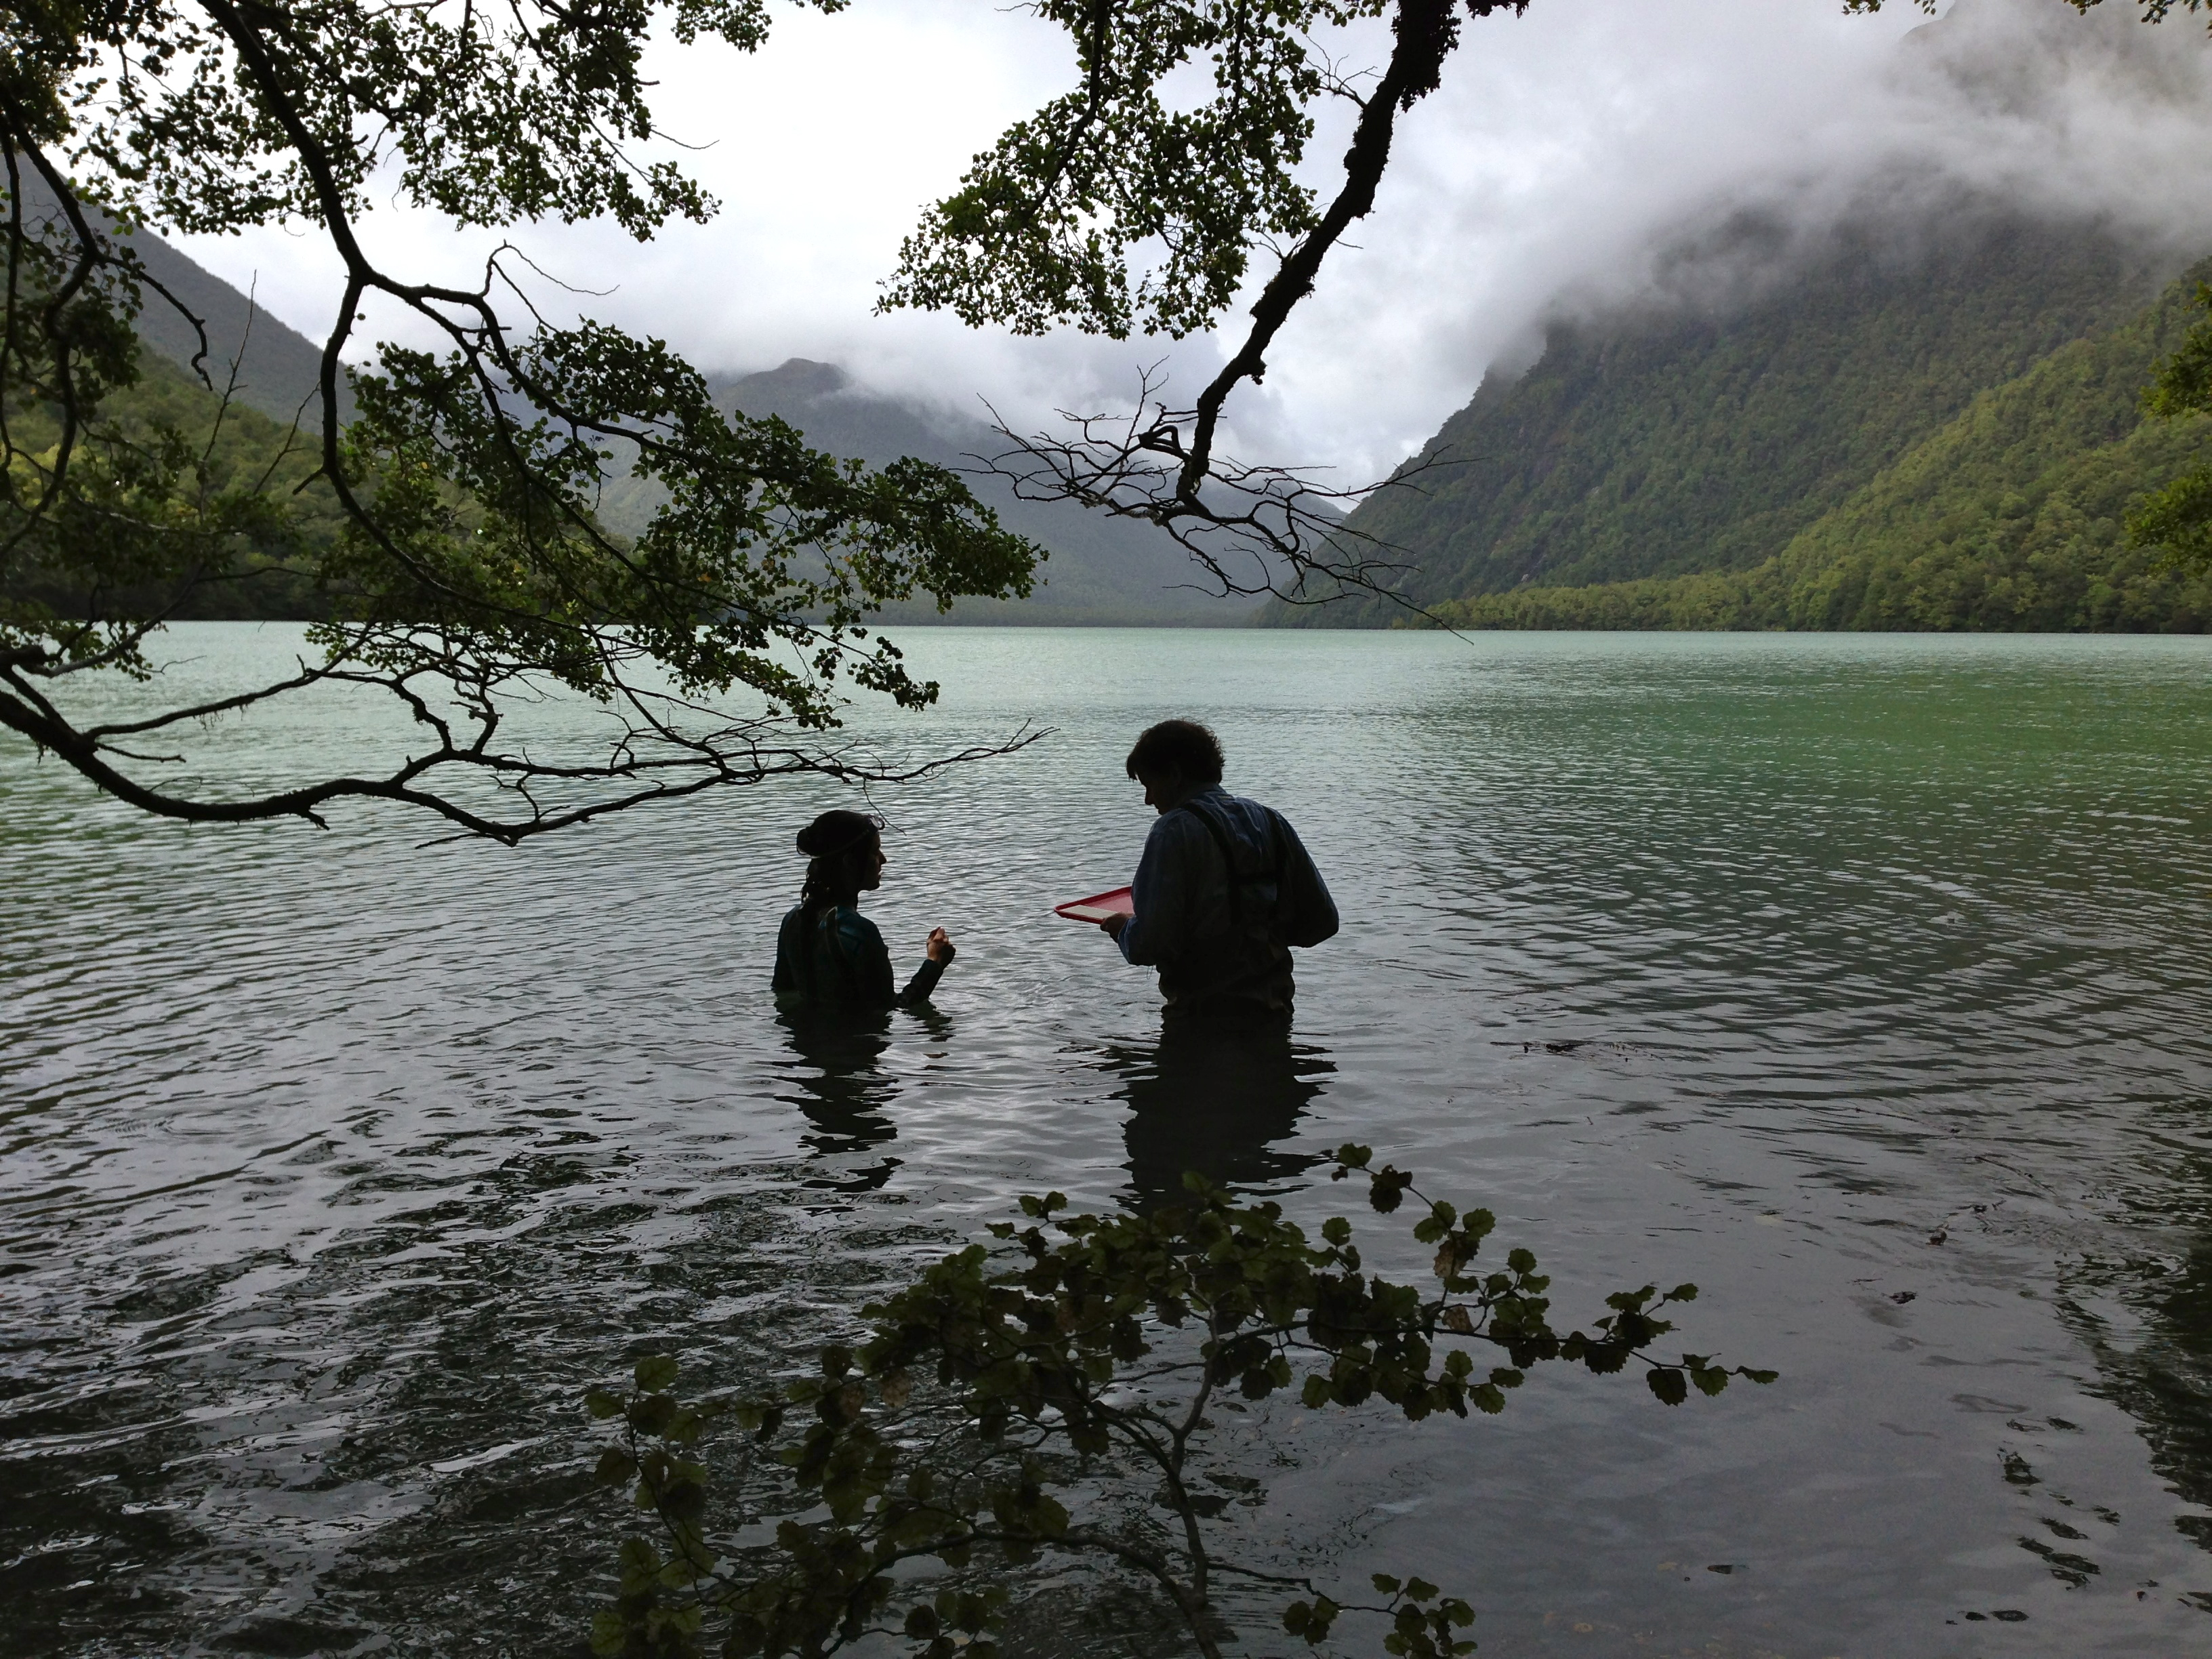 Recovering algae samples from Lake Gunn, a typical habitat for Potamopyrgus antipodarum.